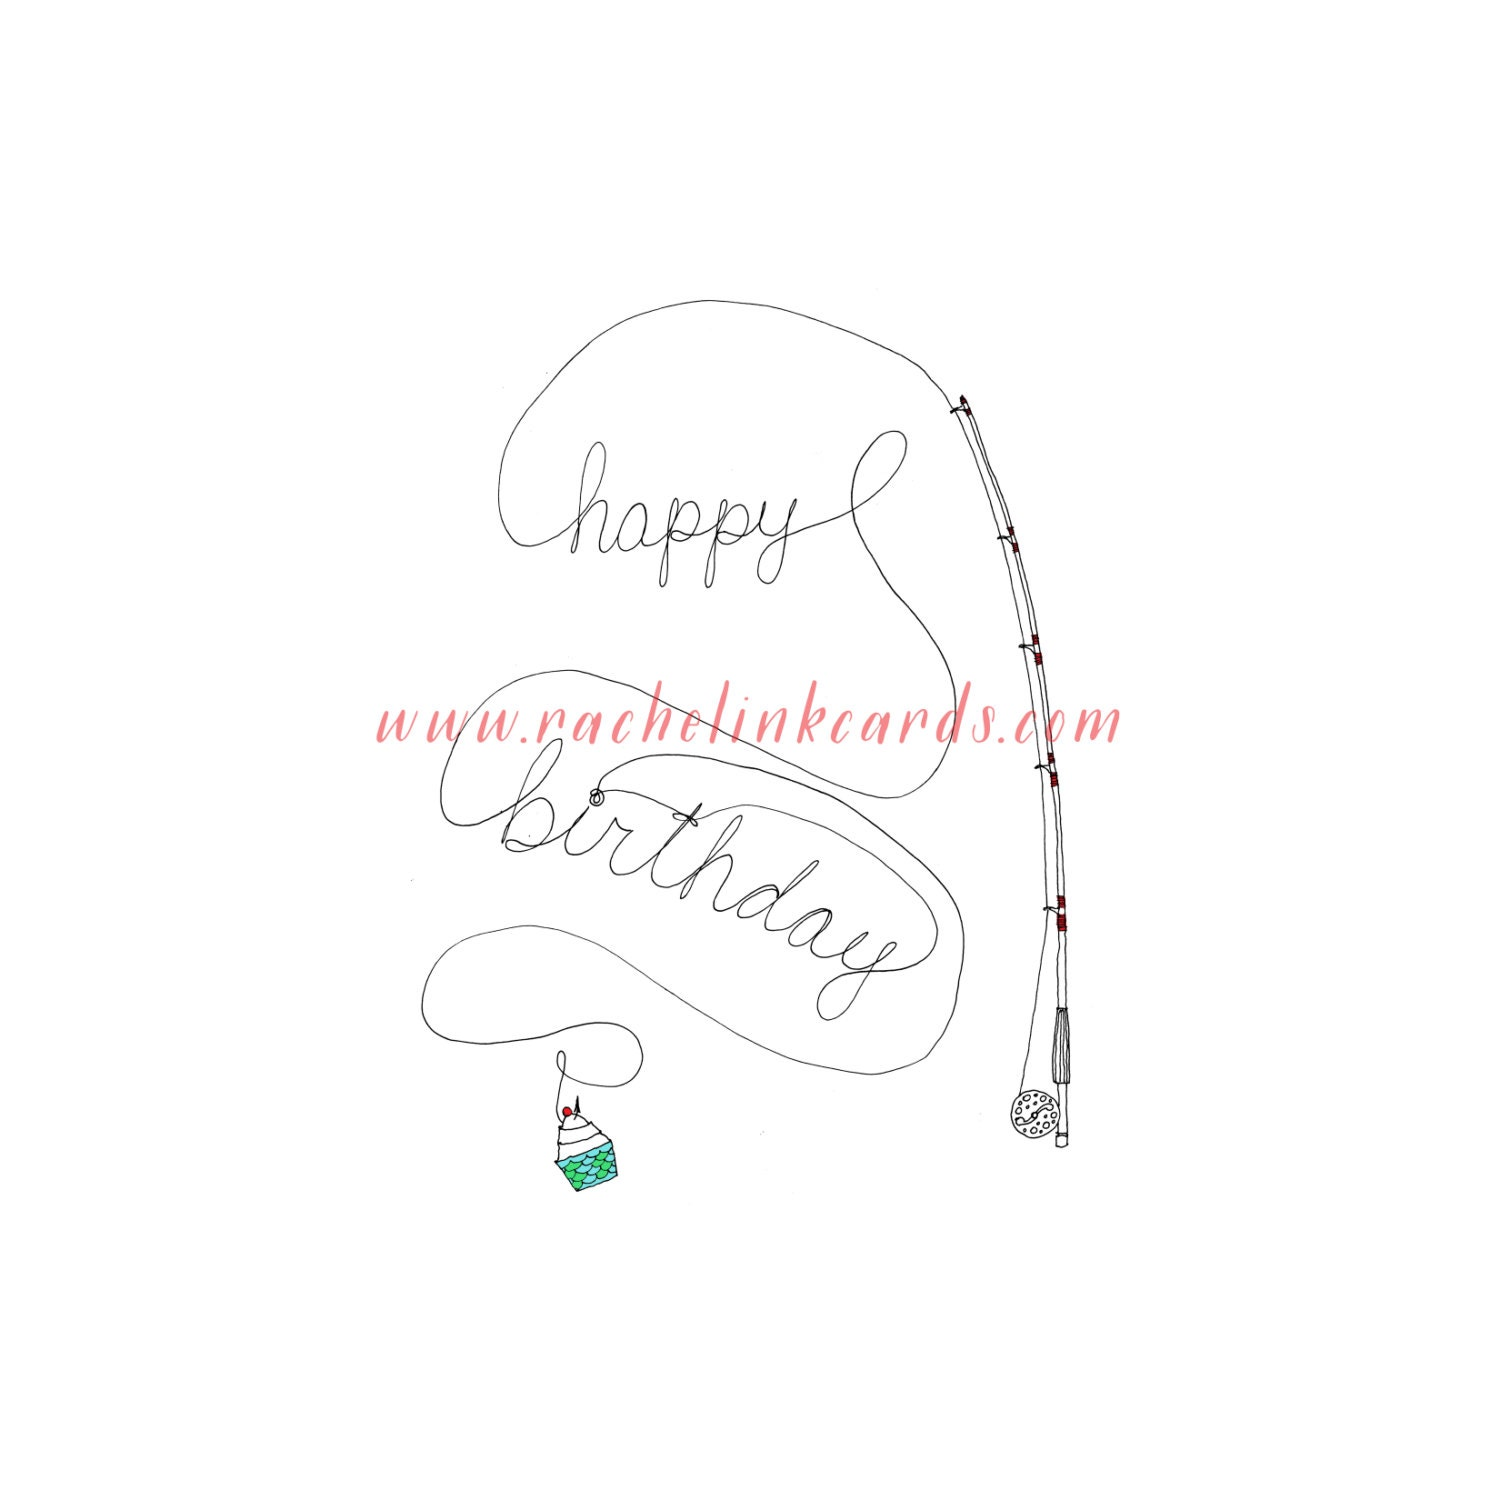 32631754614 furthermore 164547314 as well Storycards likewise Tattoo With Transparent Background Img35 223435p besides Fly Fishing Happy Birthday Card. on us name card